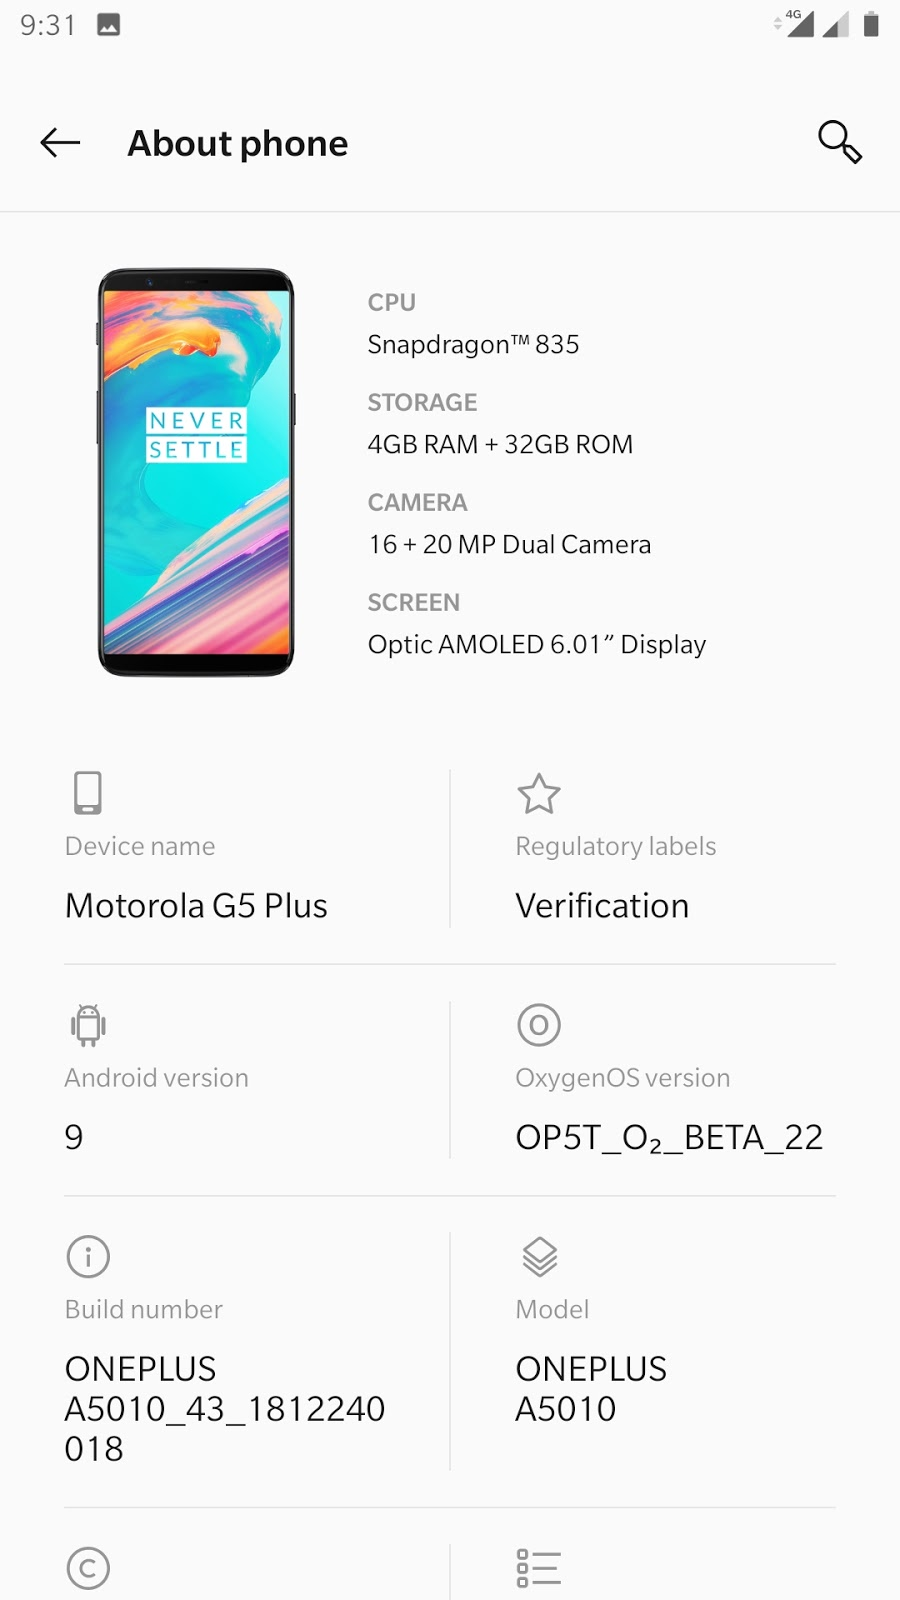 OxygenOS Pie is now available for Moto G5 Plus - TheSpAndroid